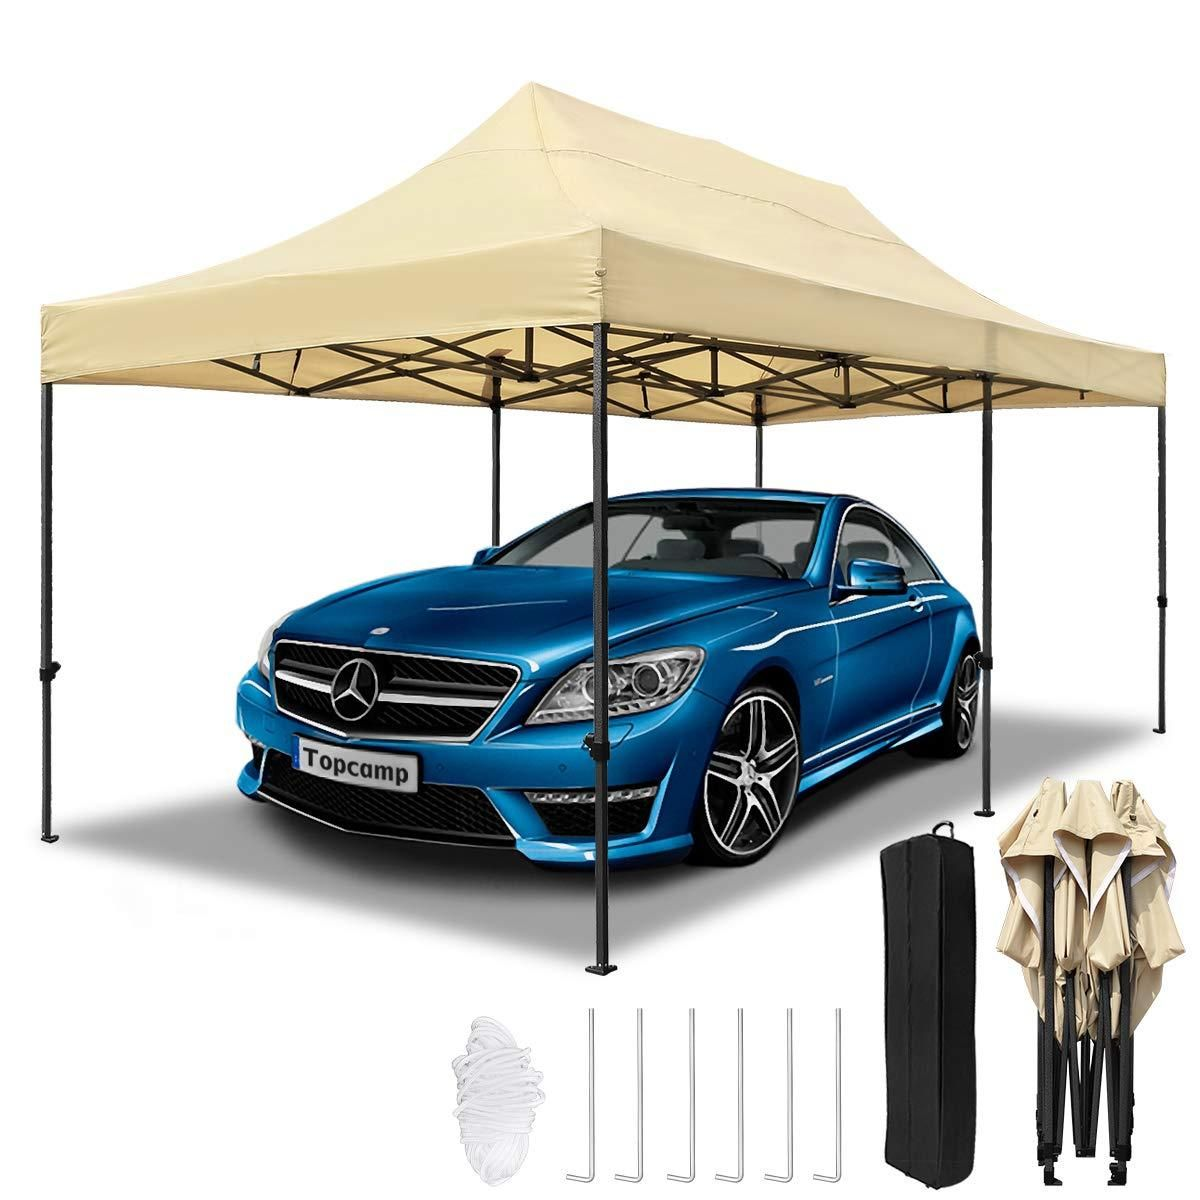 10x20 ft Pop up Canopy Carport, Heavy Duty Waterproof